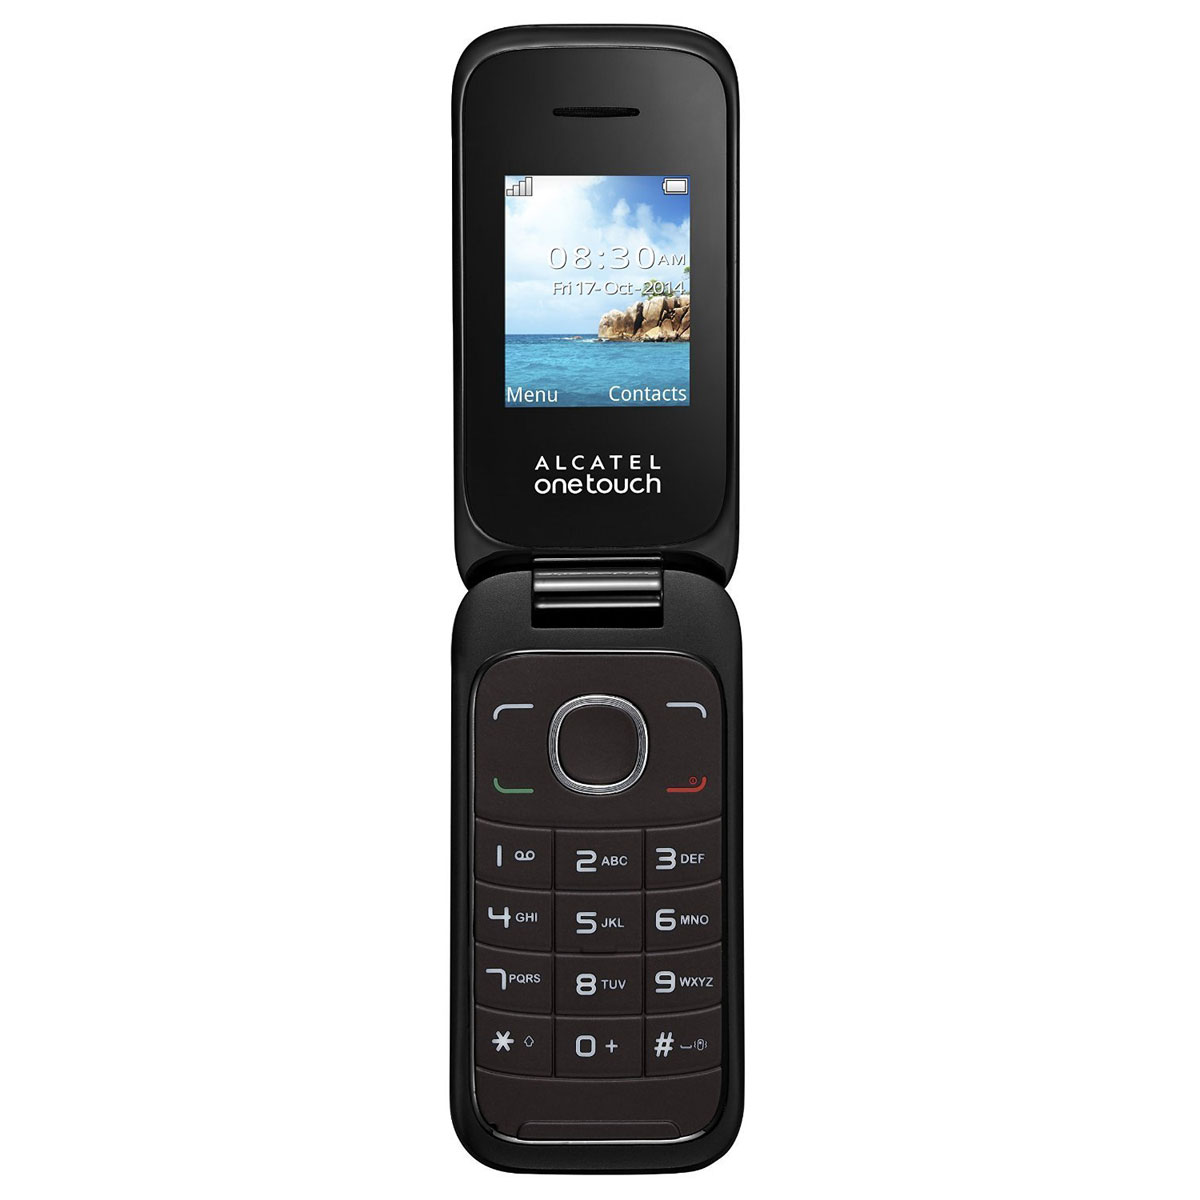 alcatel noir mobile smartphone alcatel sur ldlc. Black Bedroom Furniture Sets. Home Design Ideas